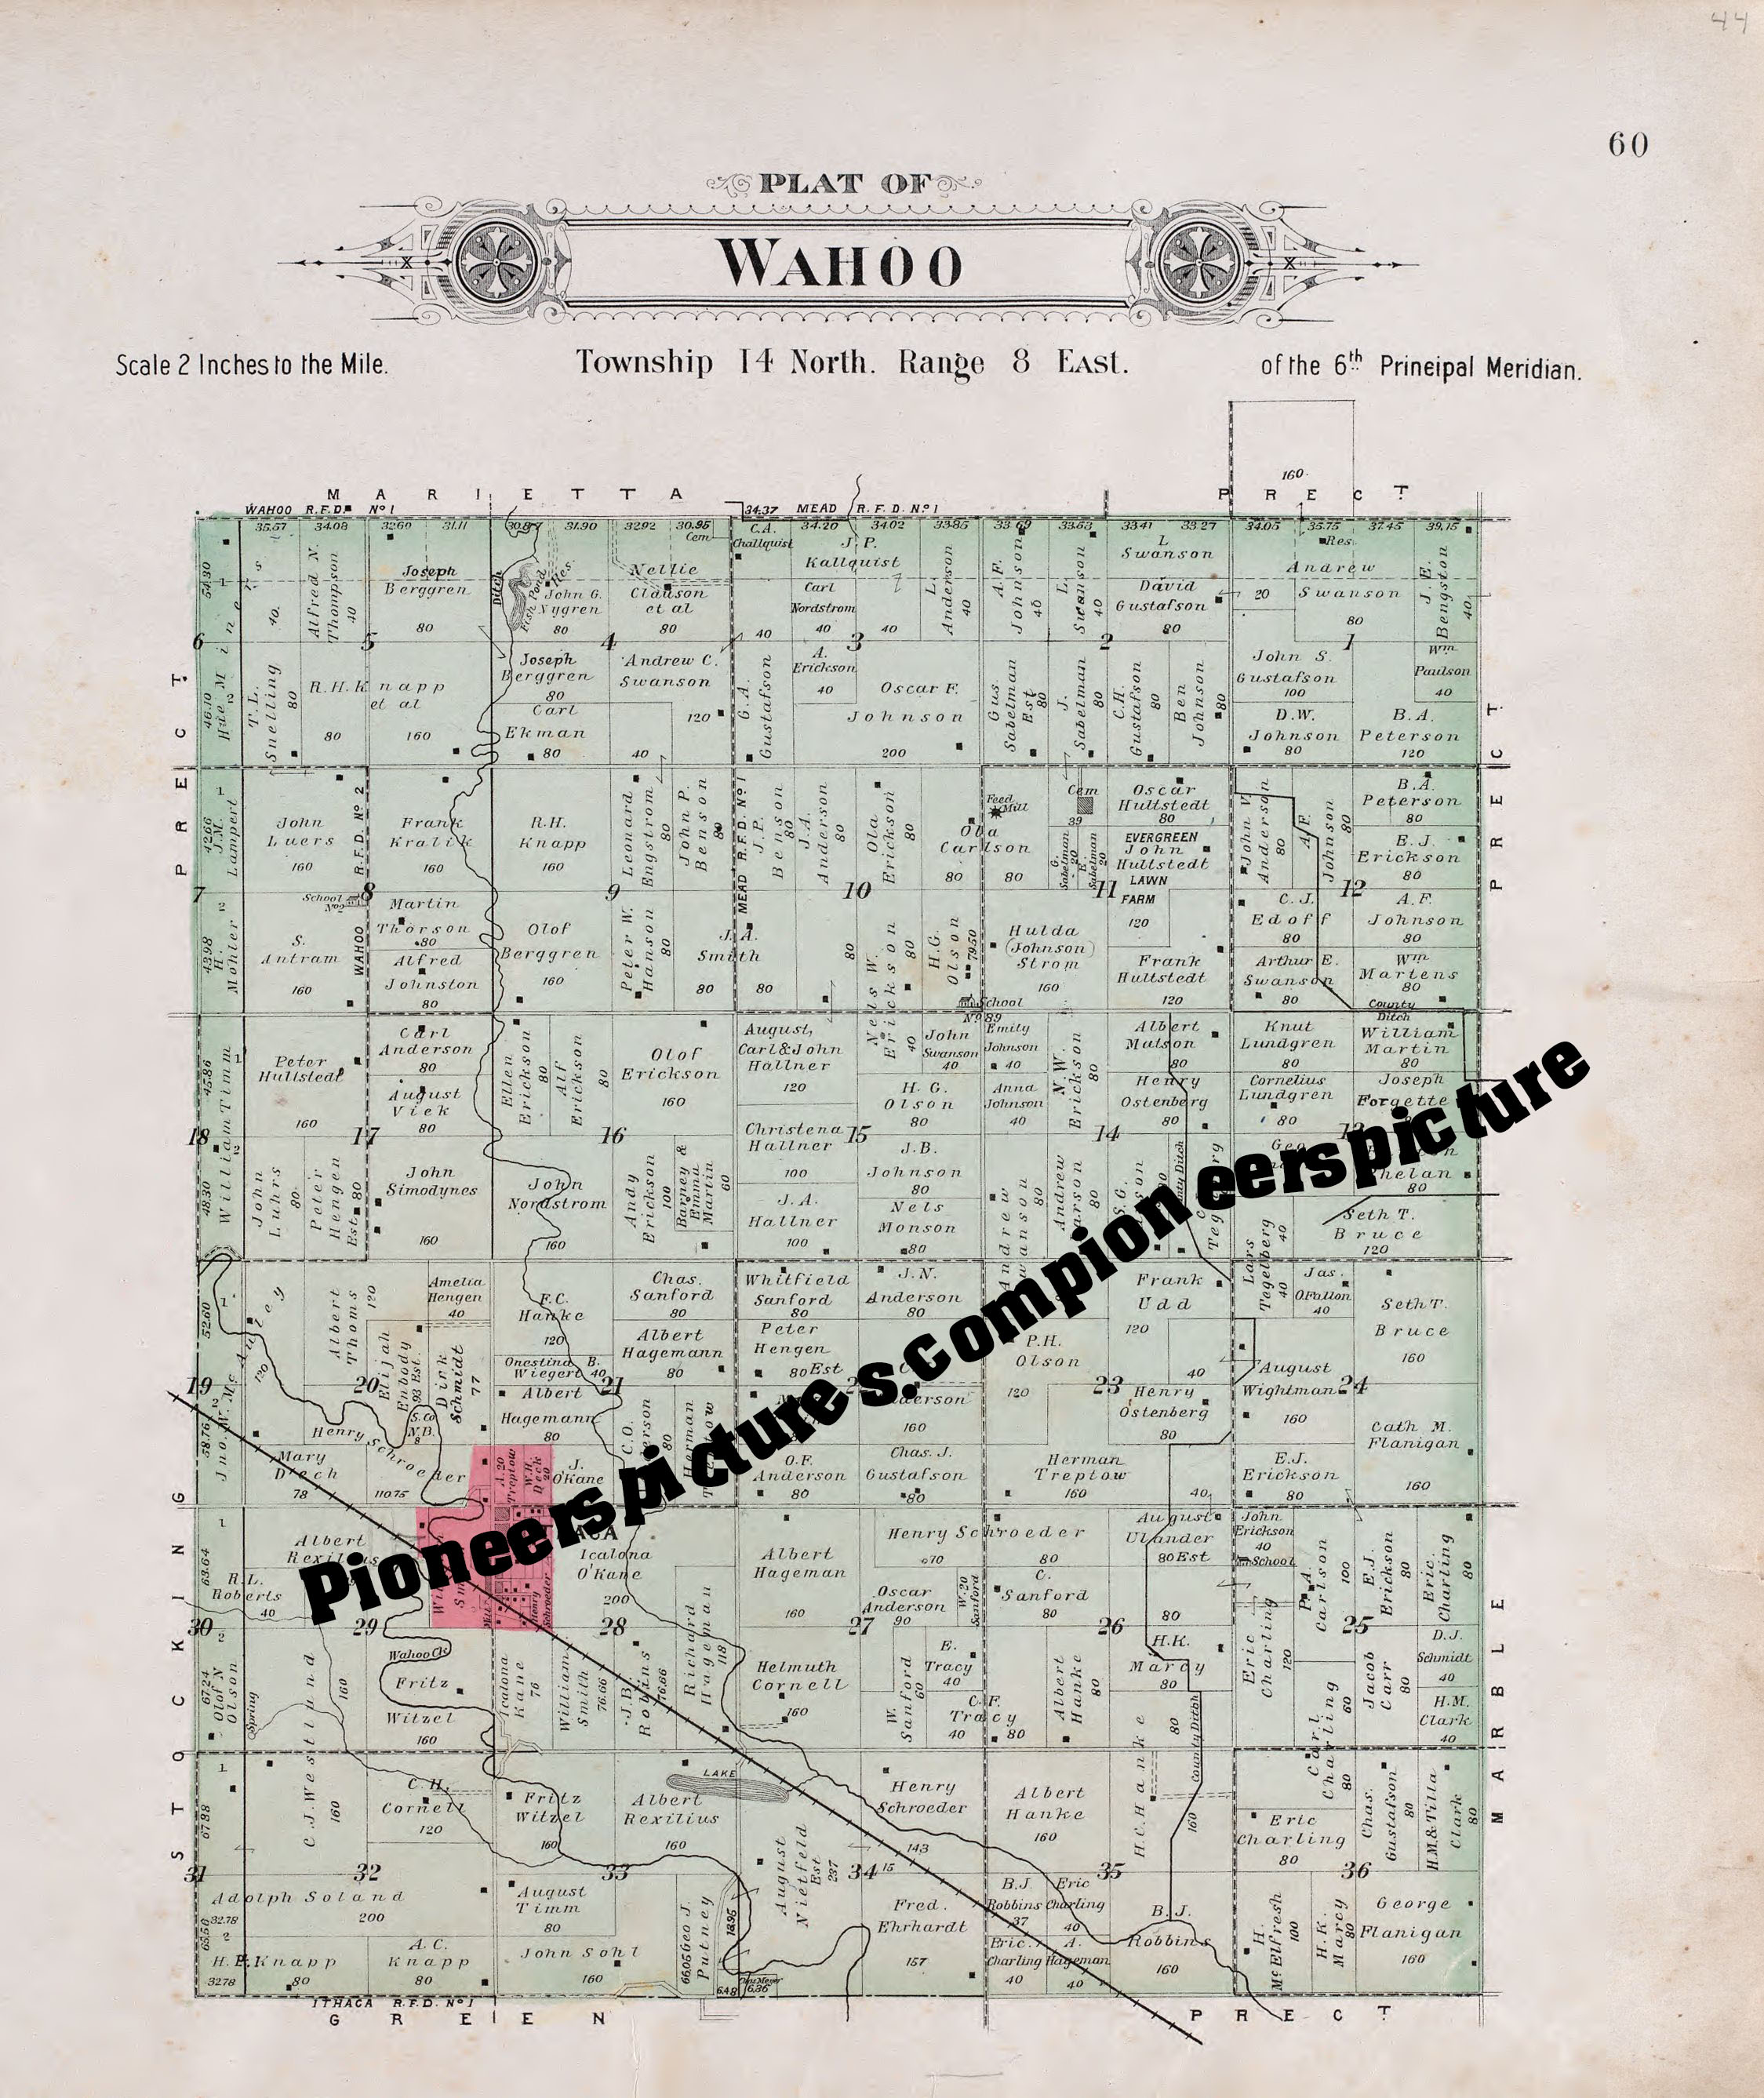 Wahoo Saunders County Nebraska 1907 Plat Map To Check To See If